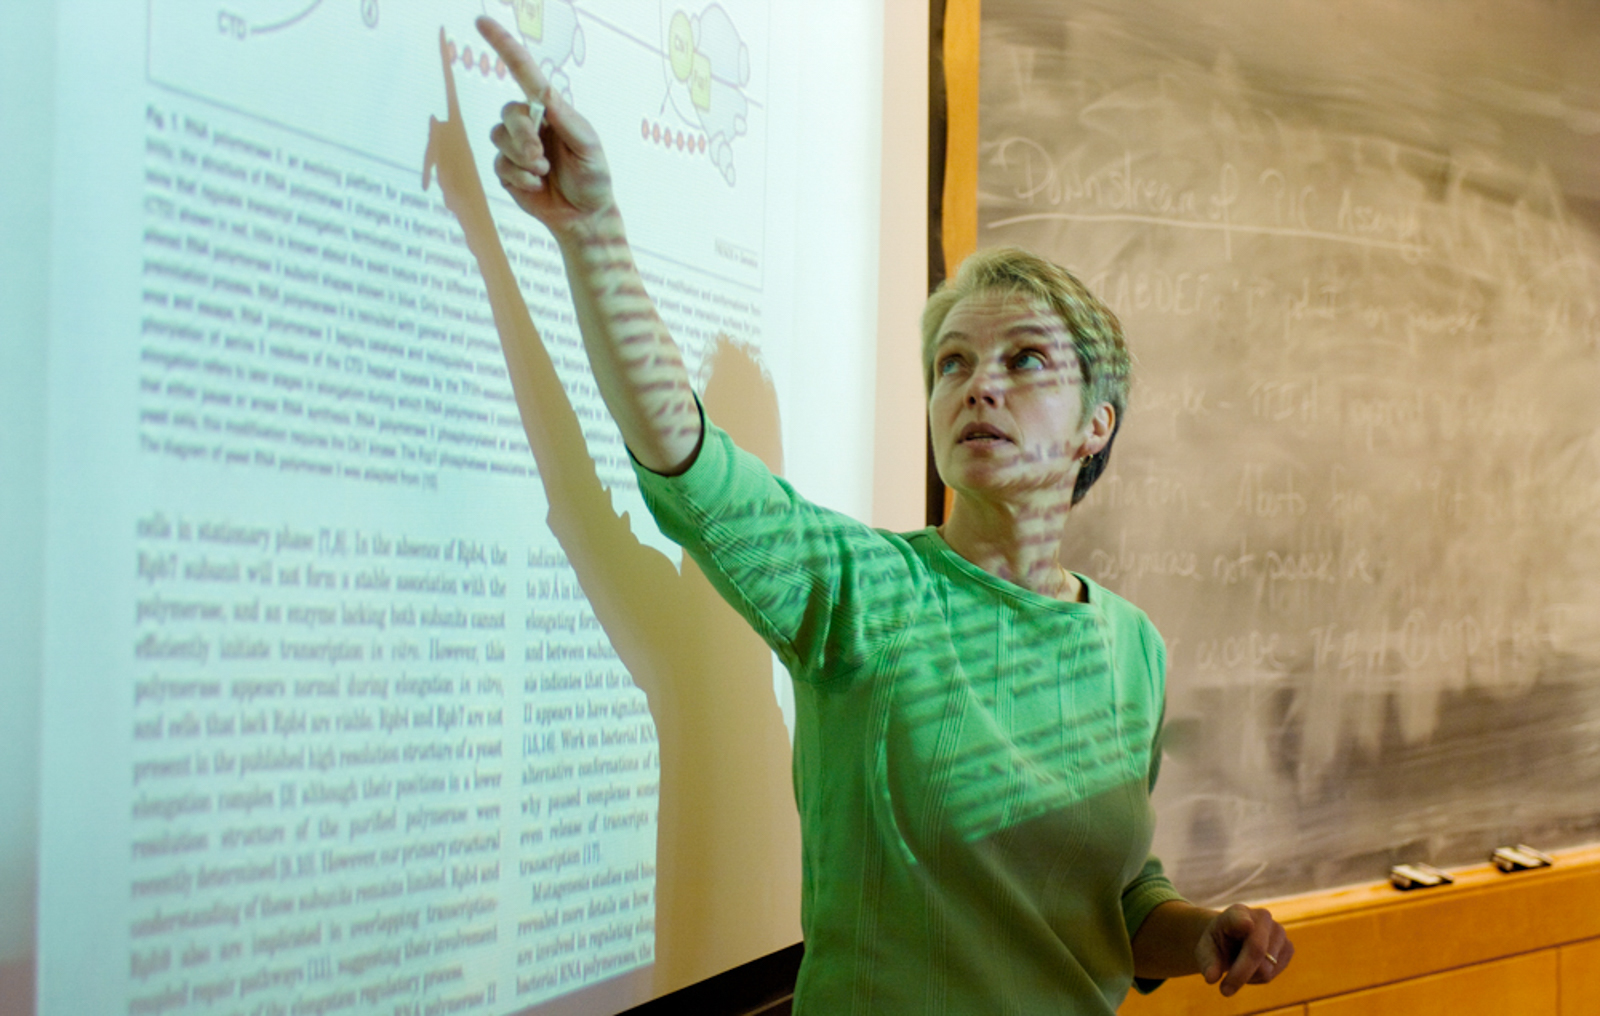 Instructor pointing at presentation on board, with reflections